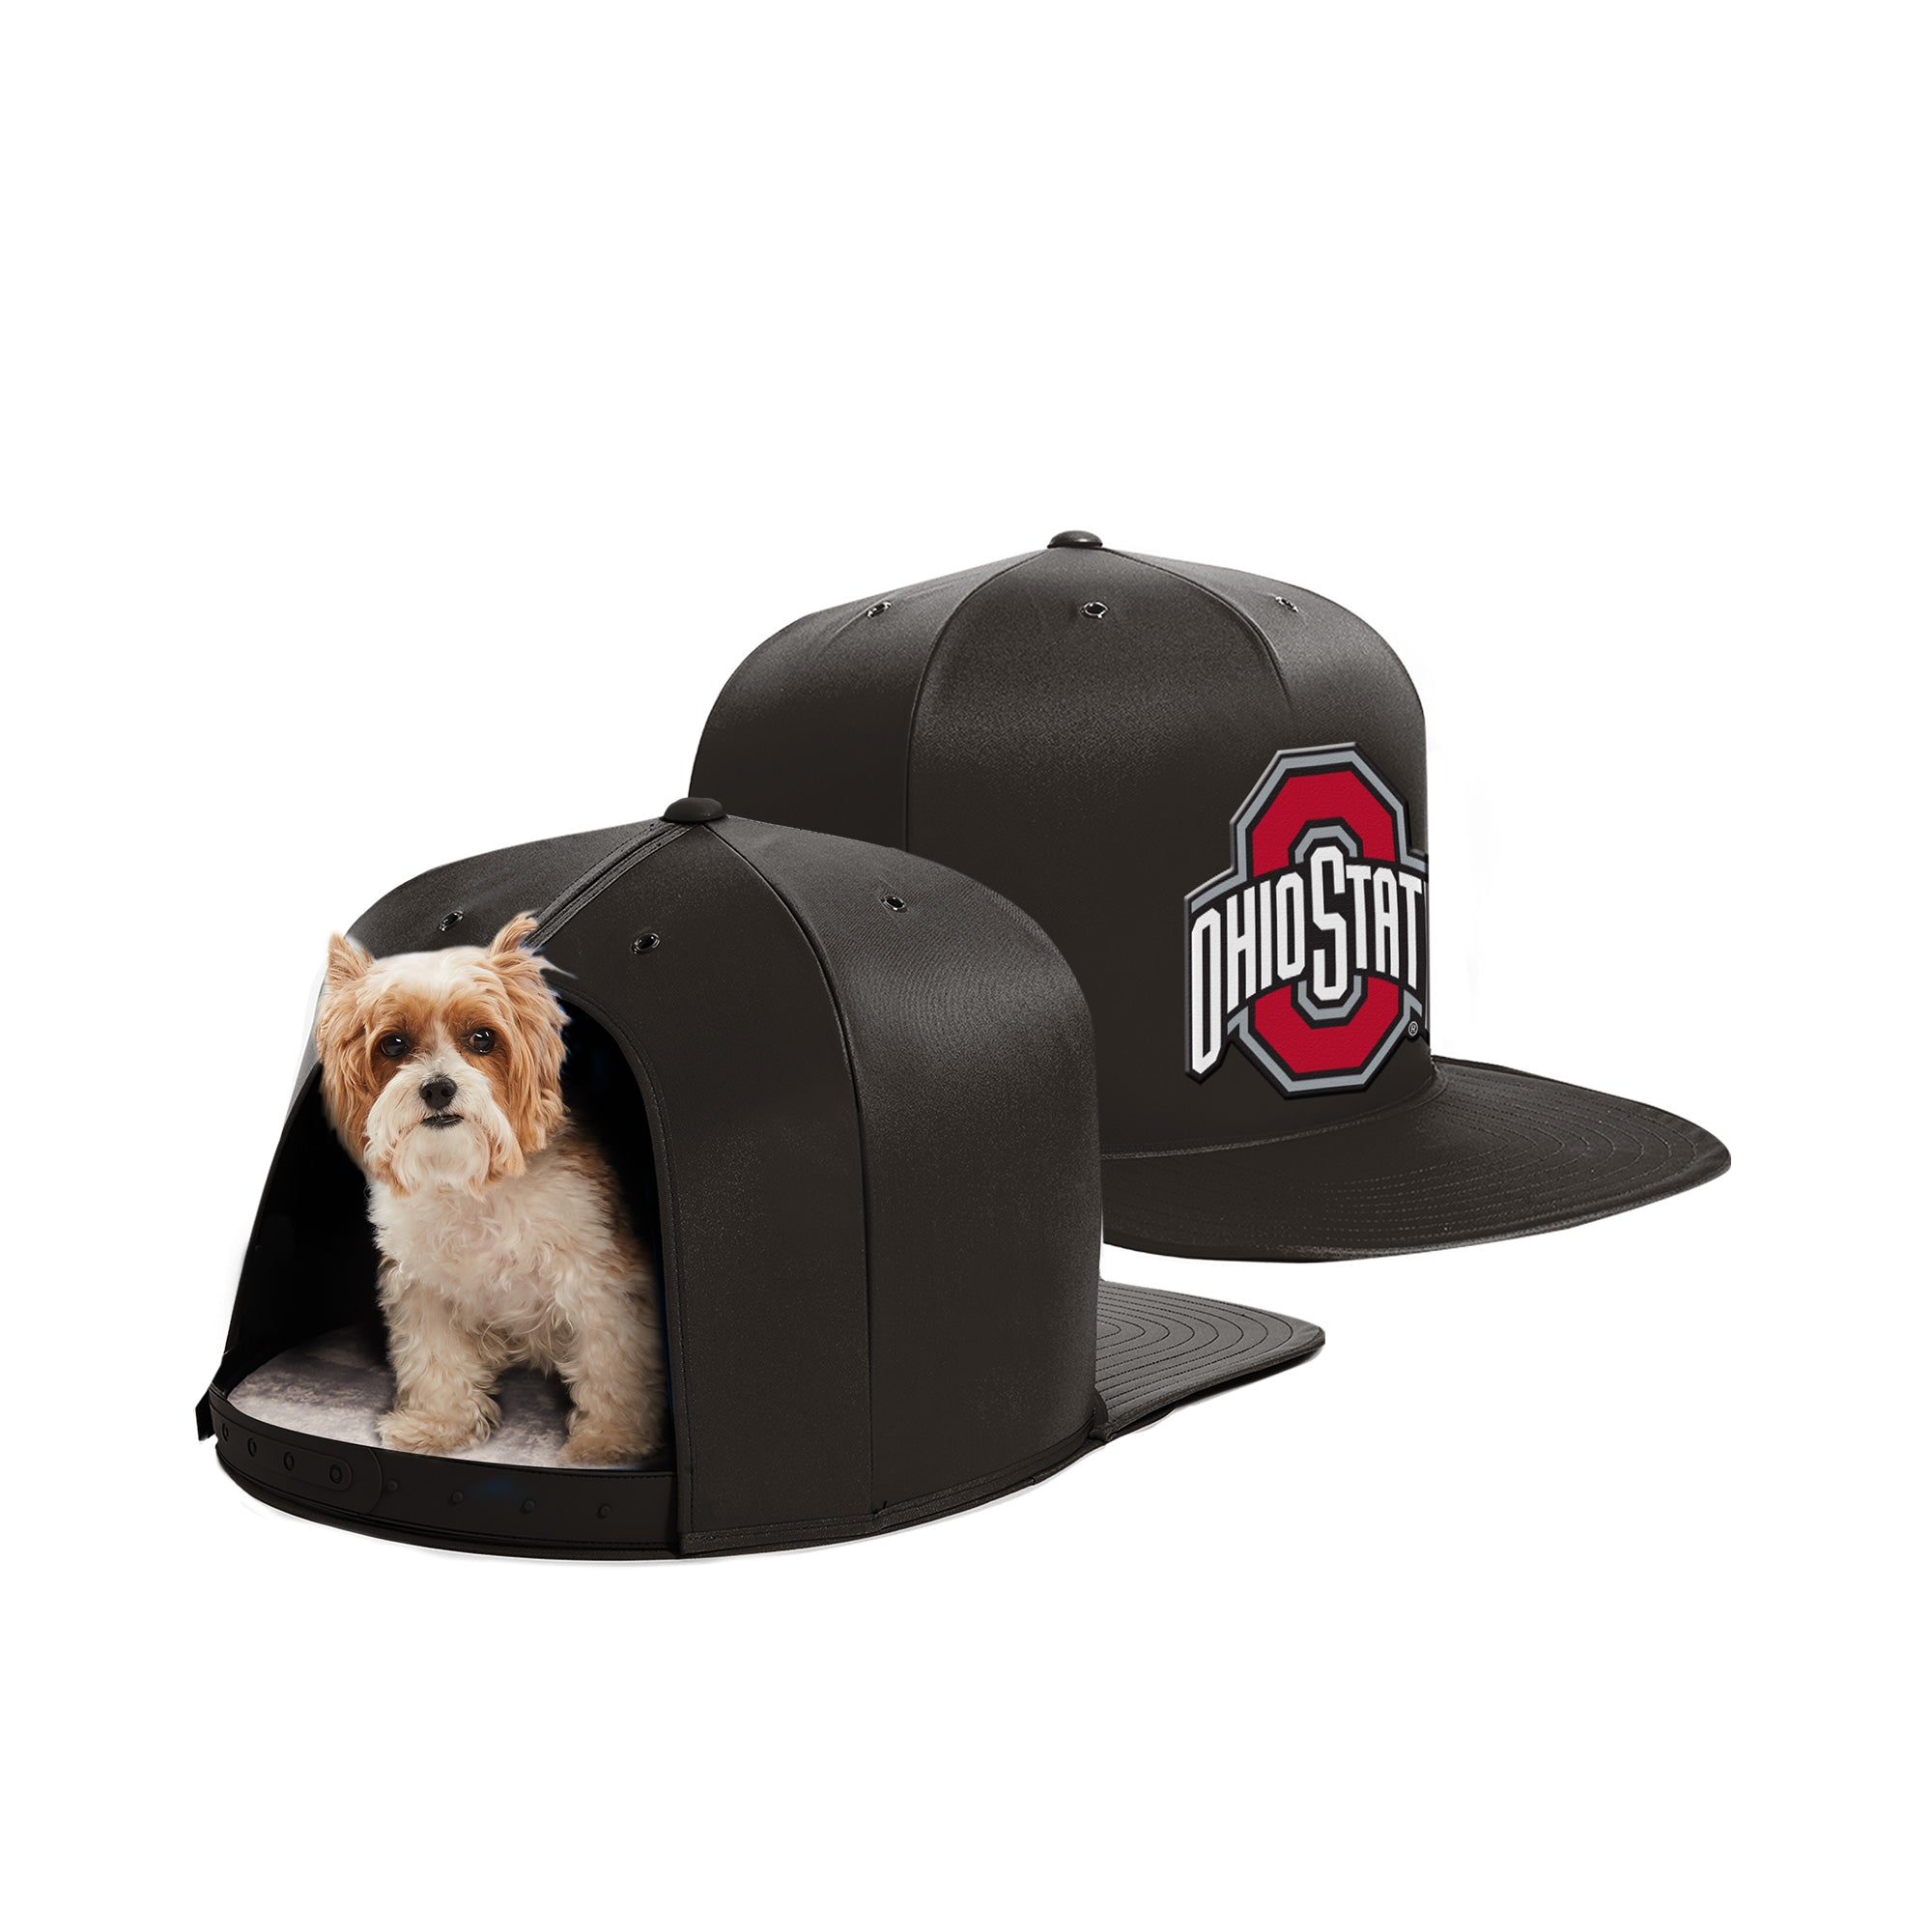 Nap Cap - Ohio State University - Pet Bed